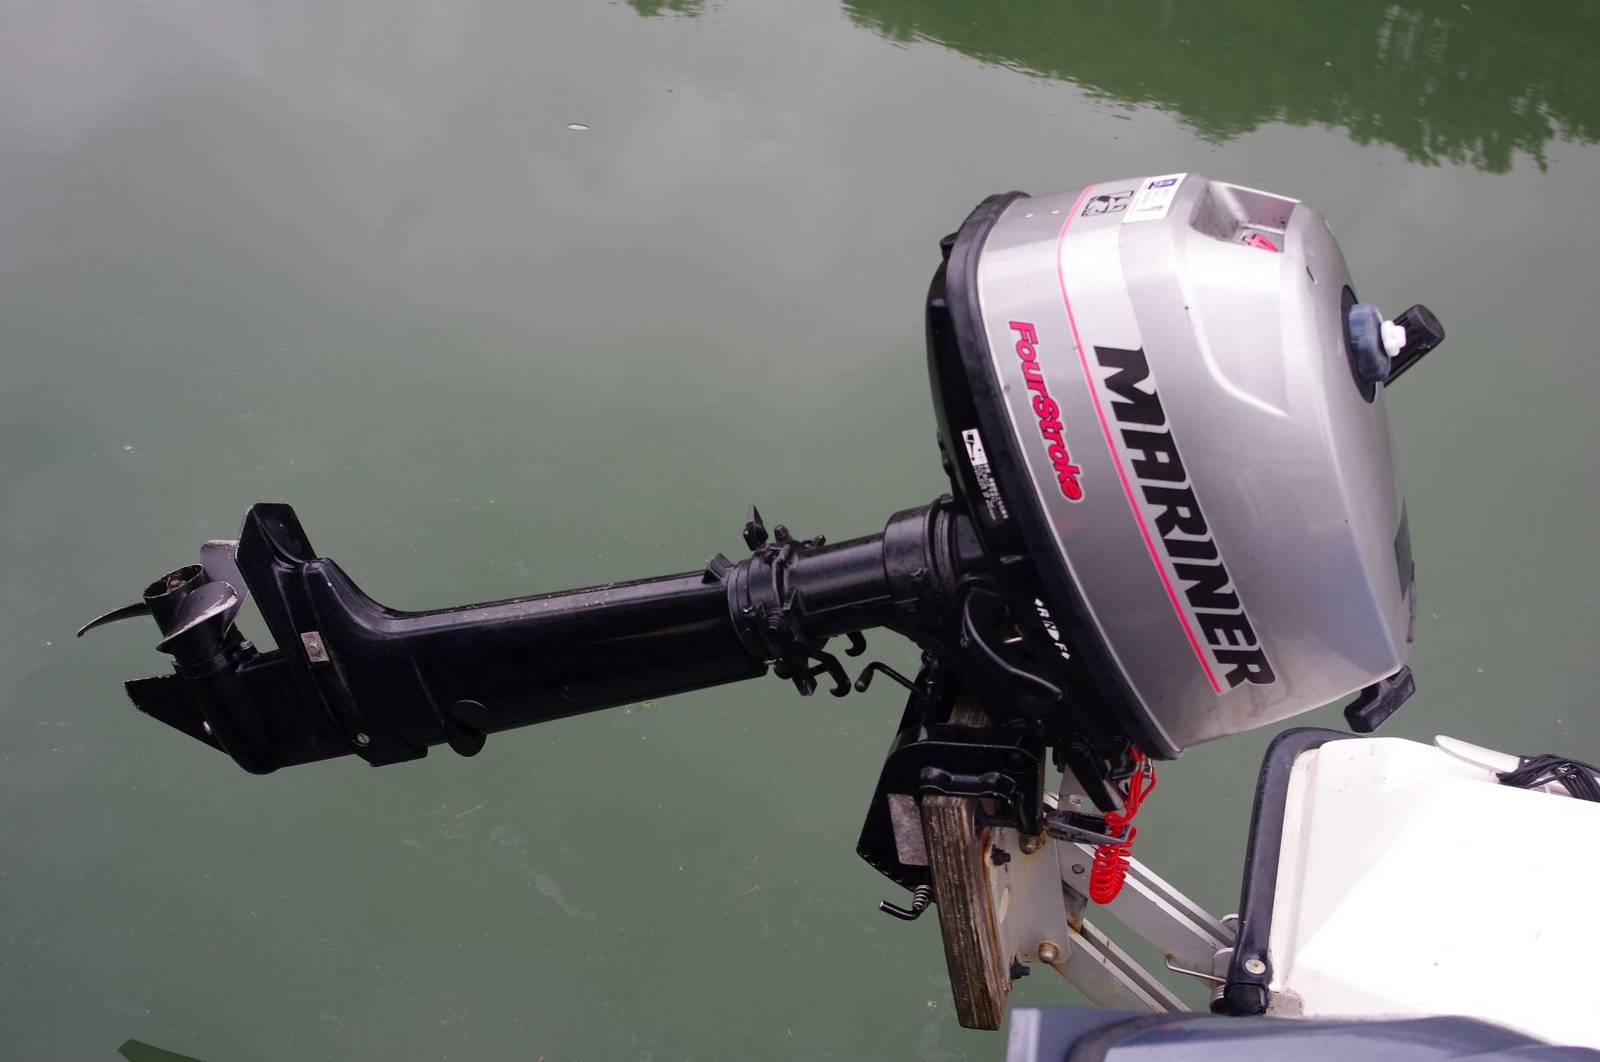 Seahog Trio For Sale. Fishing Boat. www.yahcts.co SA73 1PY Yachts.co Neyland. Call 01646602500